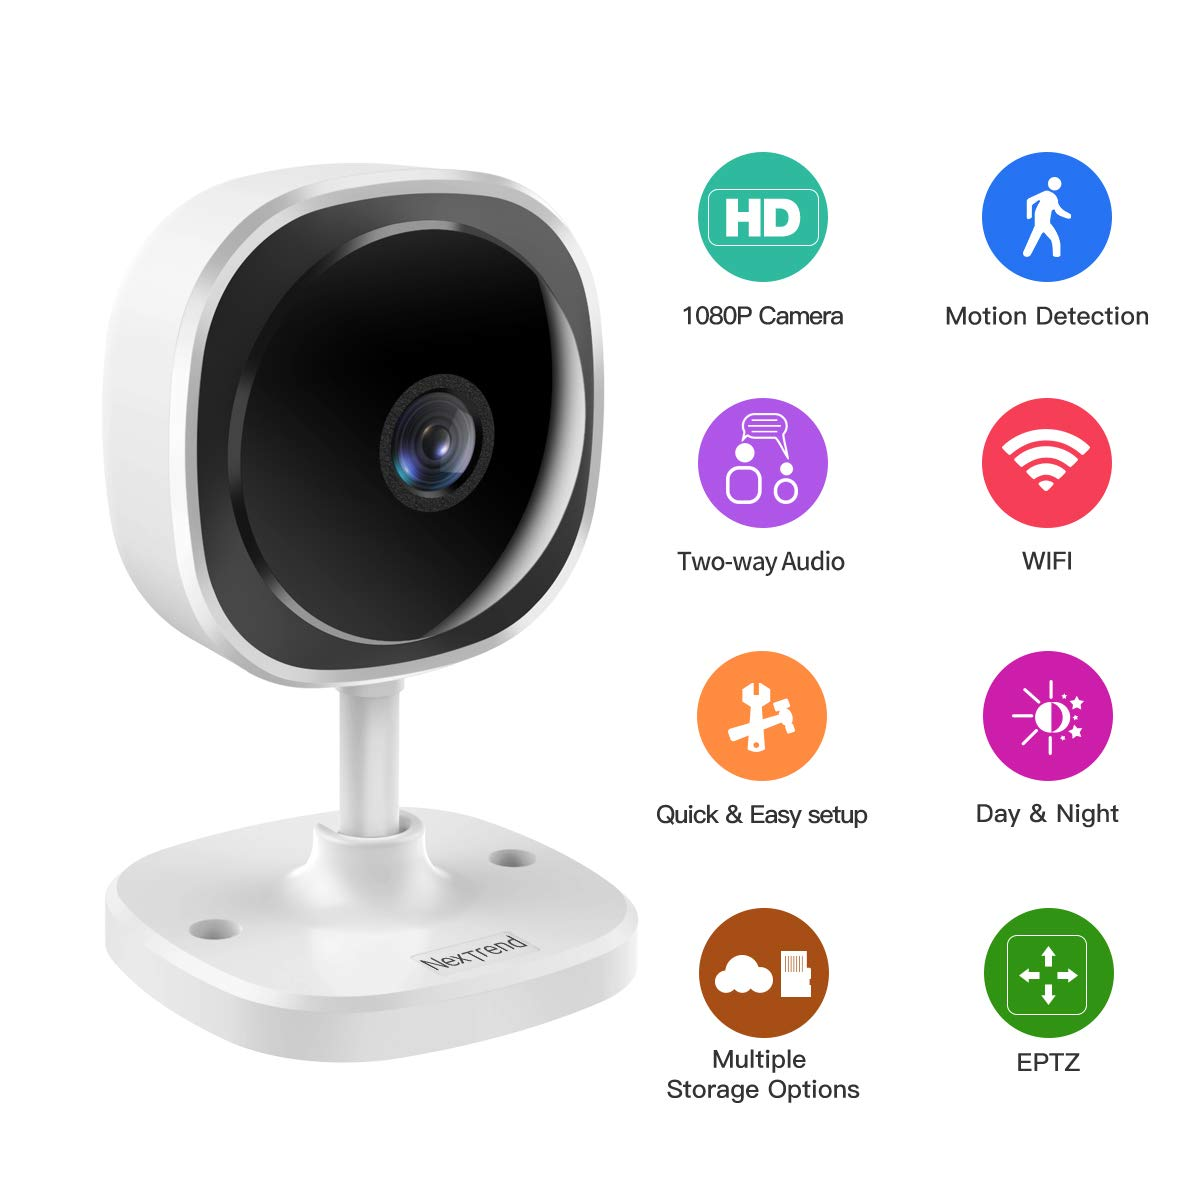 1080P Wireless Security Camera System, NexTrend 24/7 Monitor Camera System for Business/Home/Office